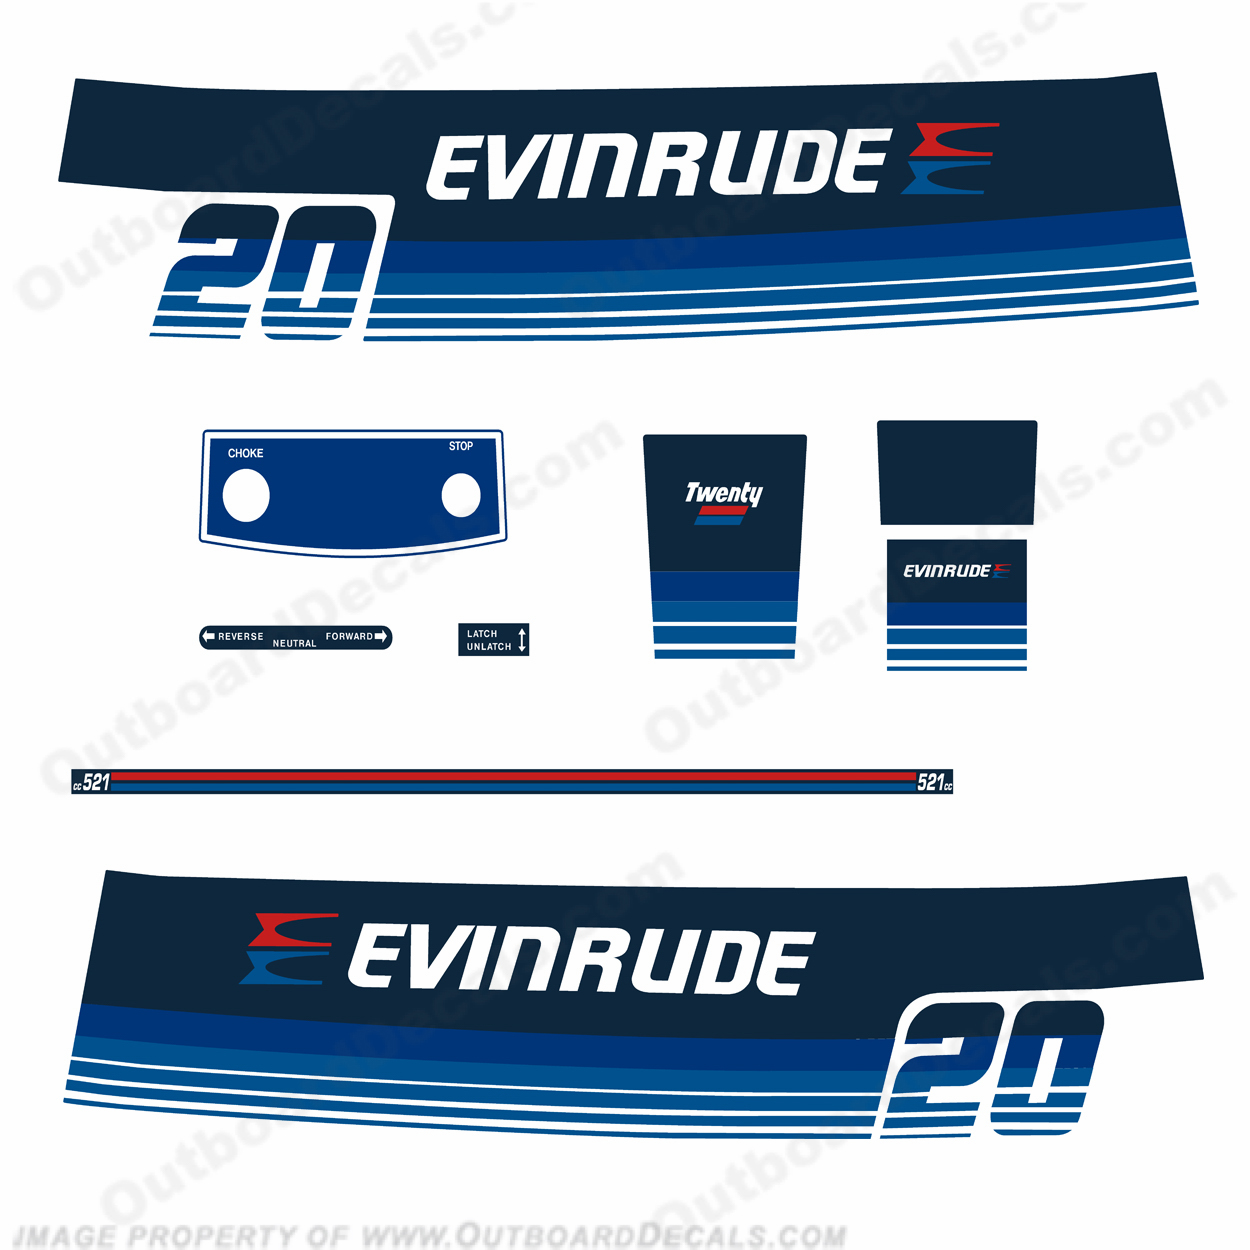 Evinrude 1979 20hp Outboard Engine Decals